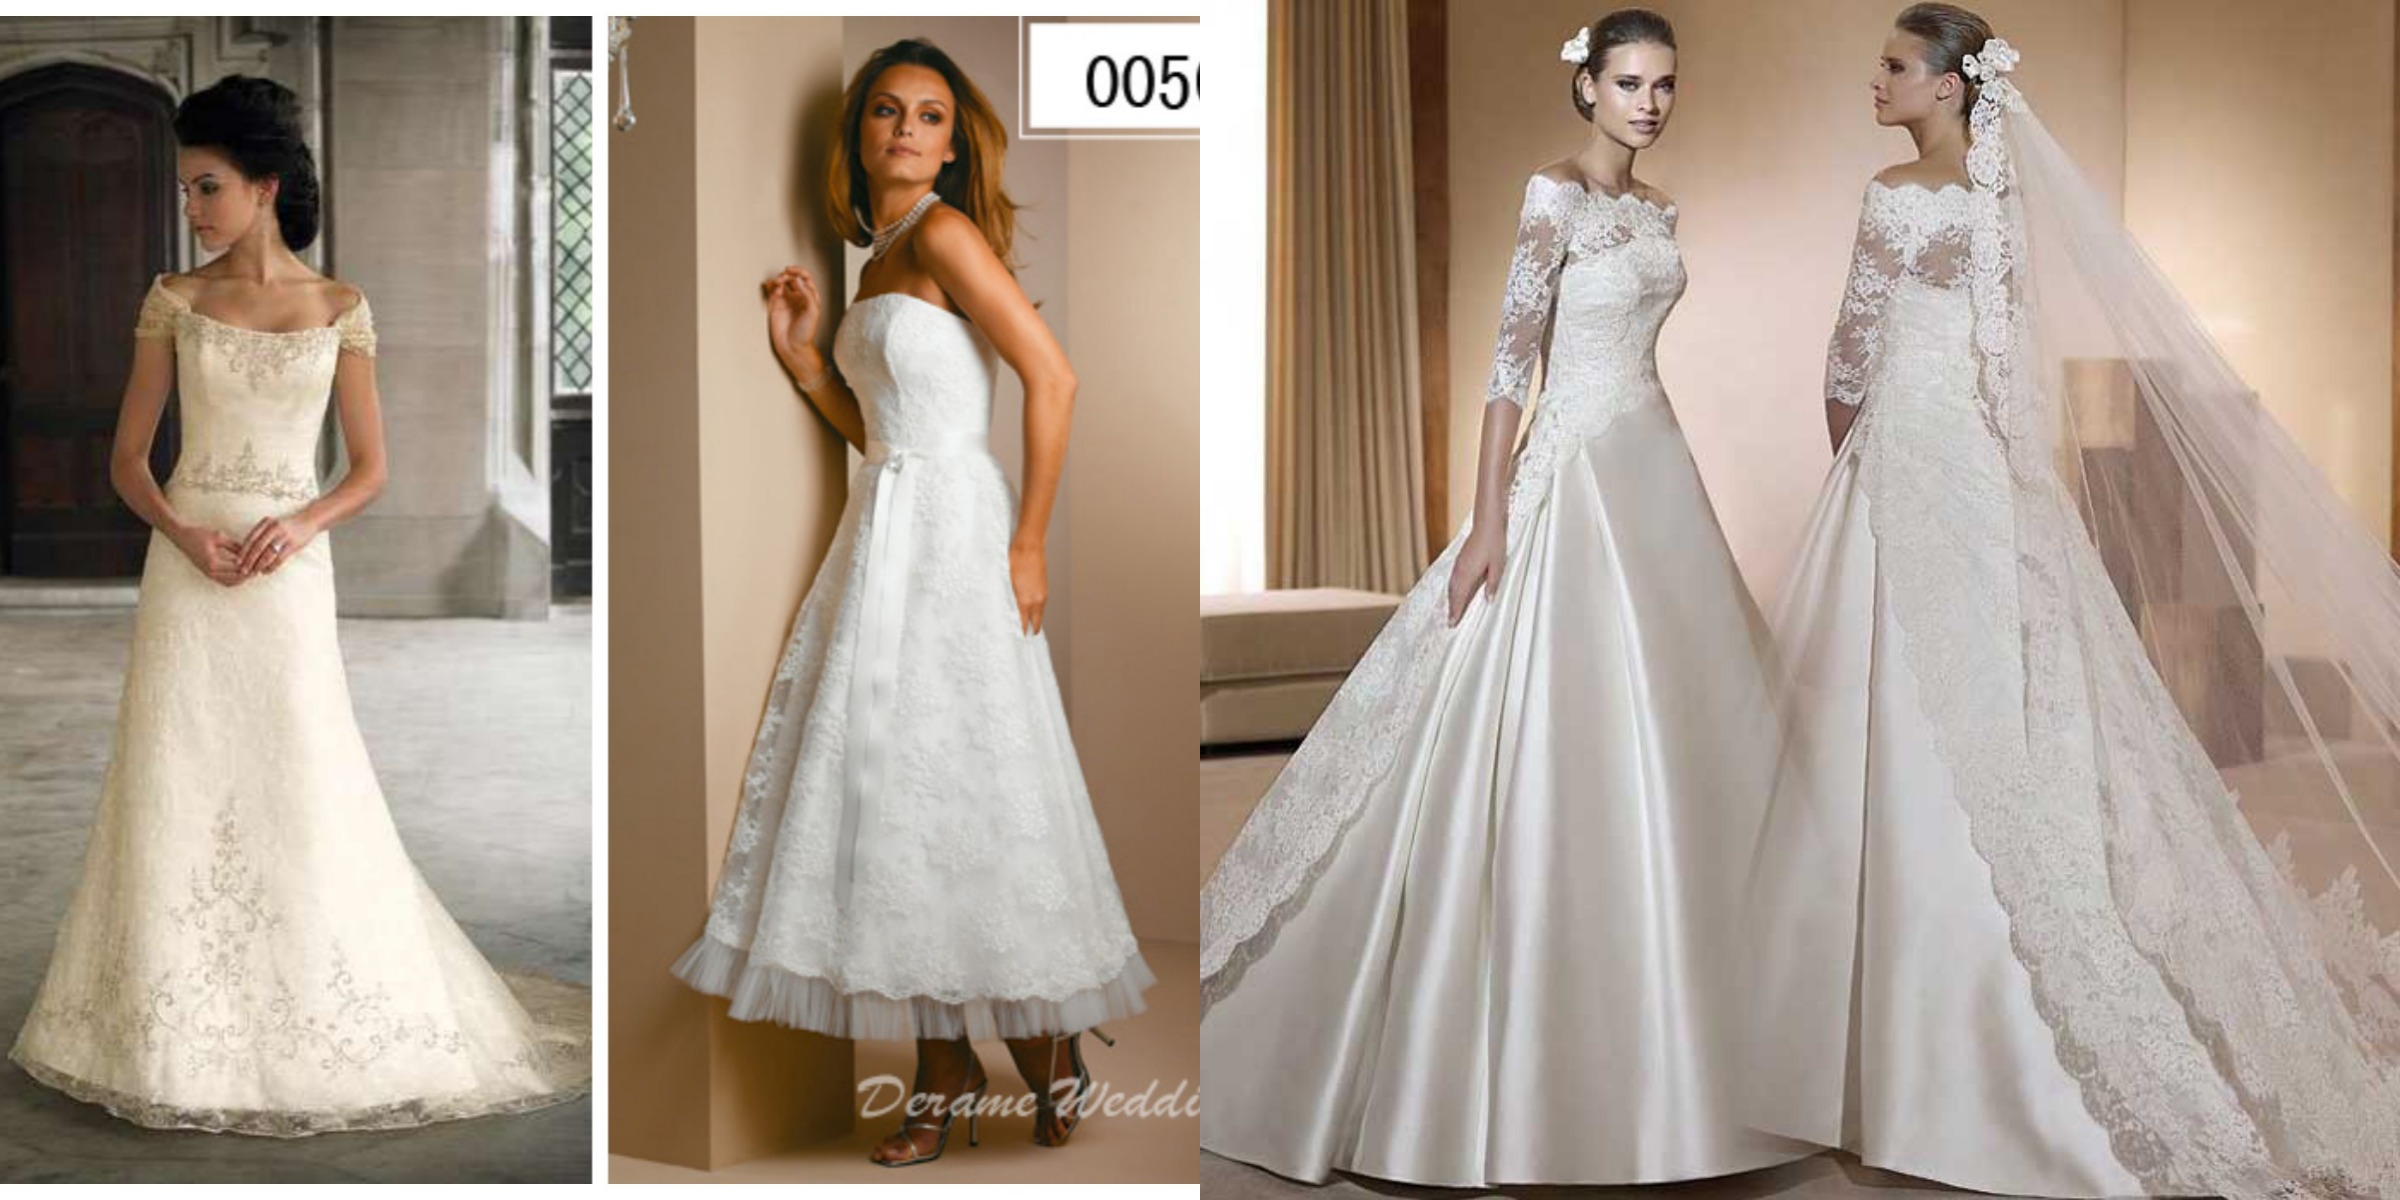 Best Dress Style For Petite